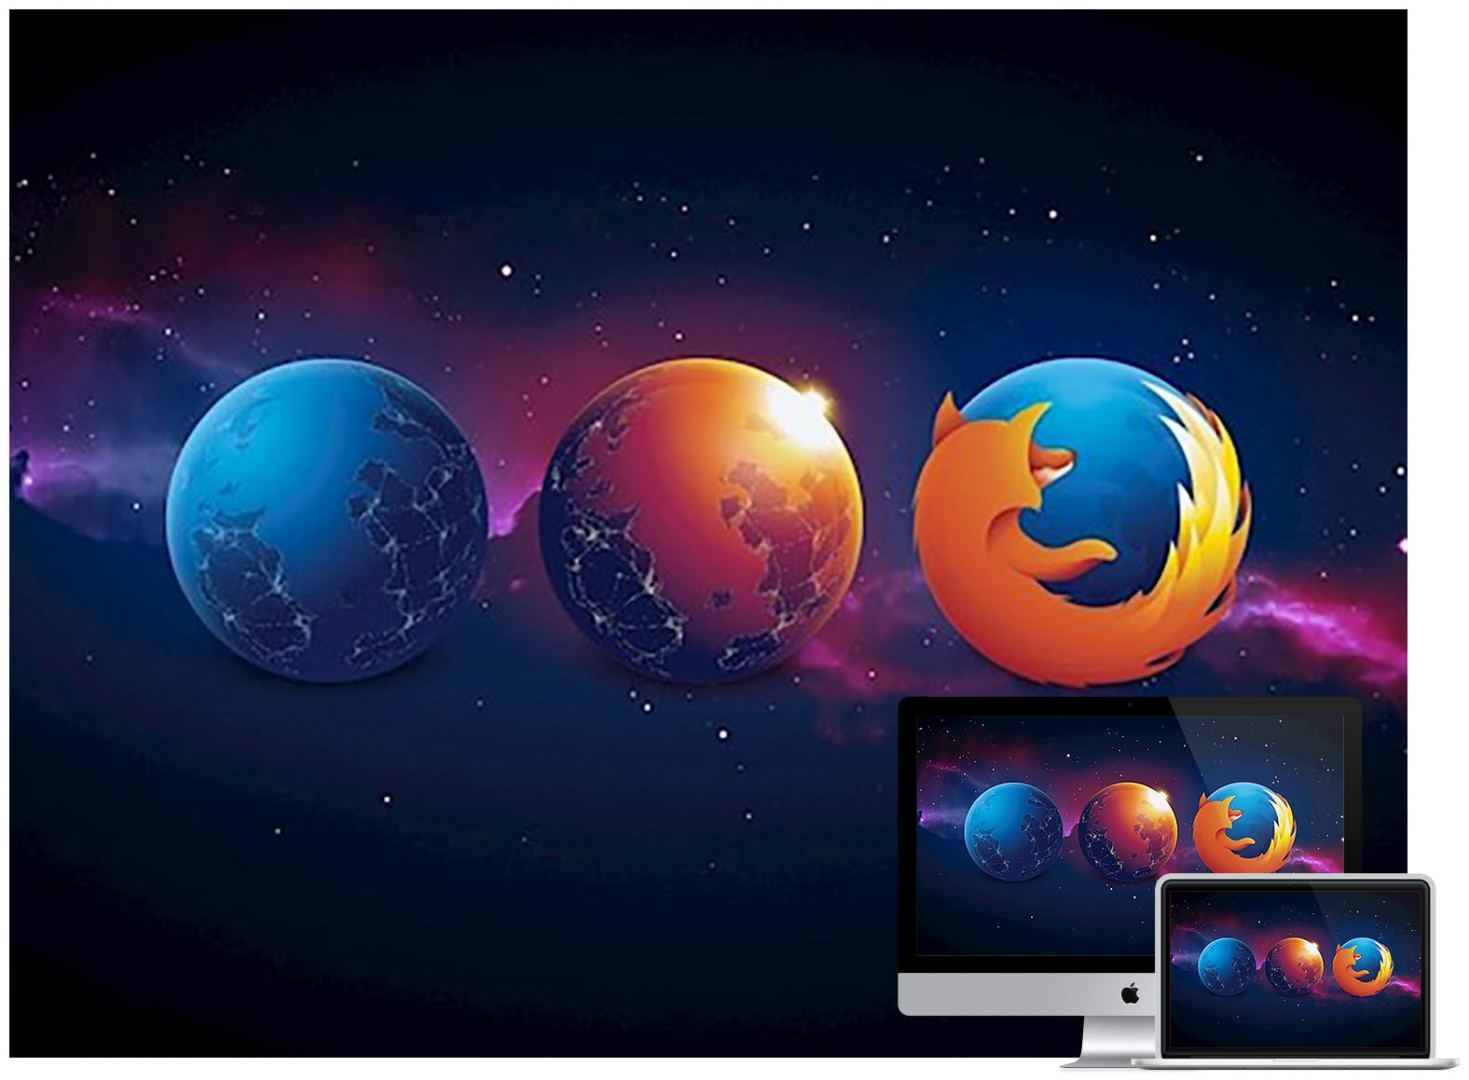 space-planets-firefox-wallpaper